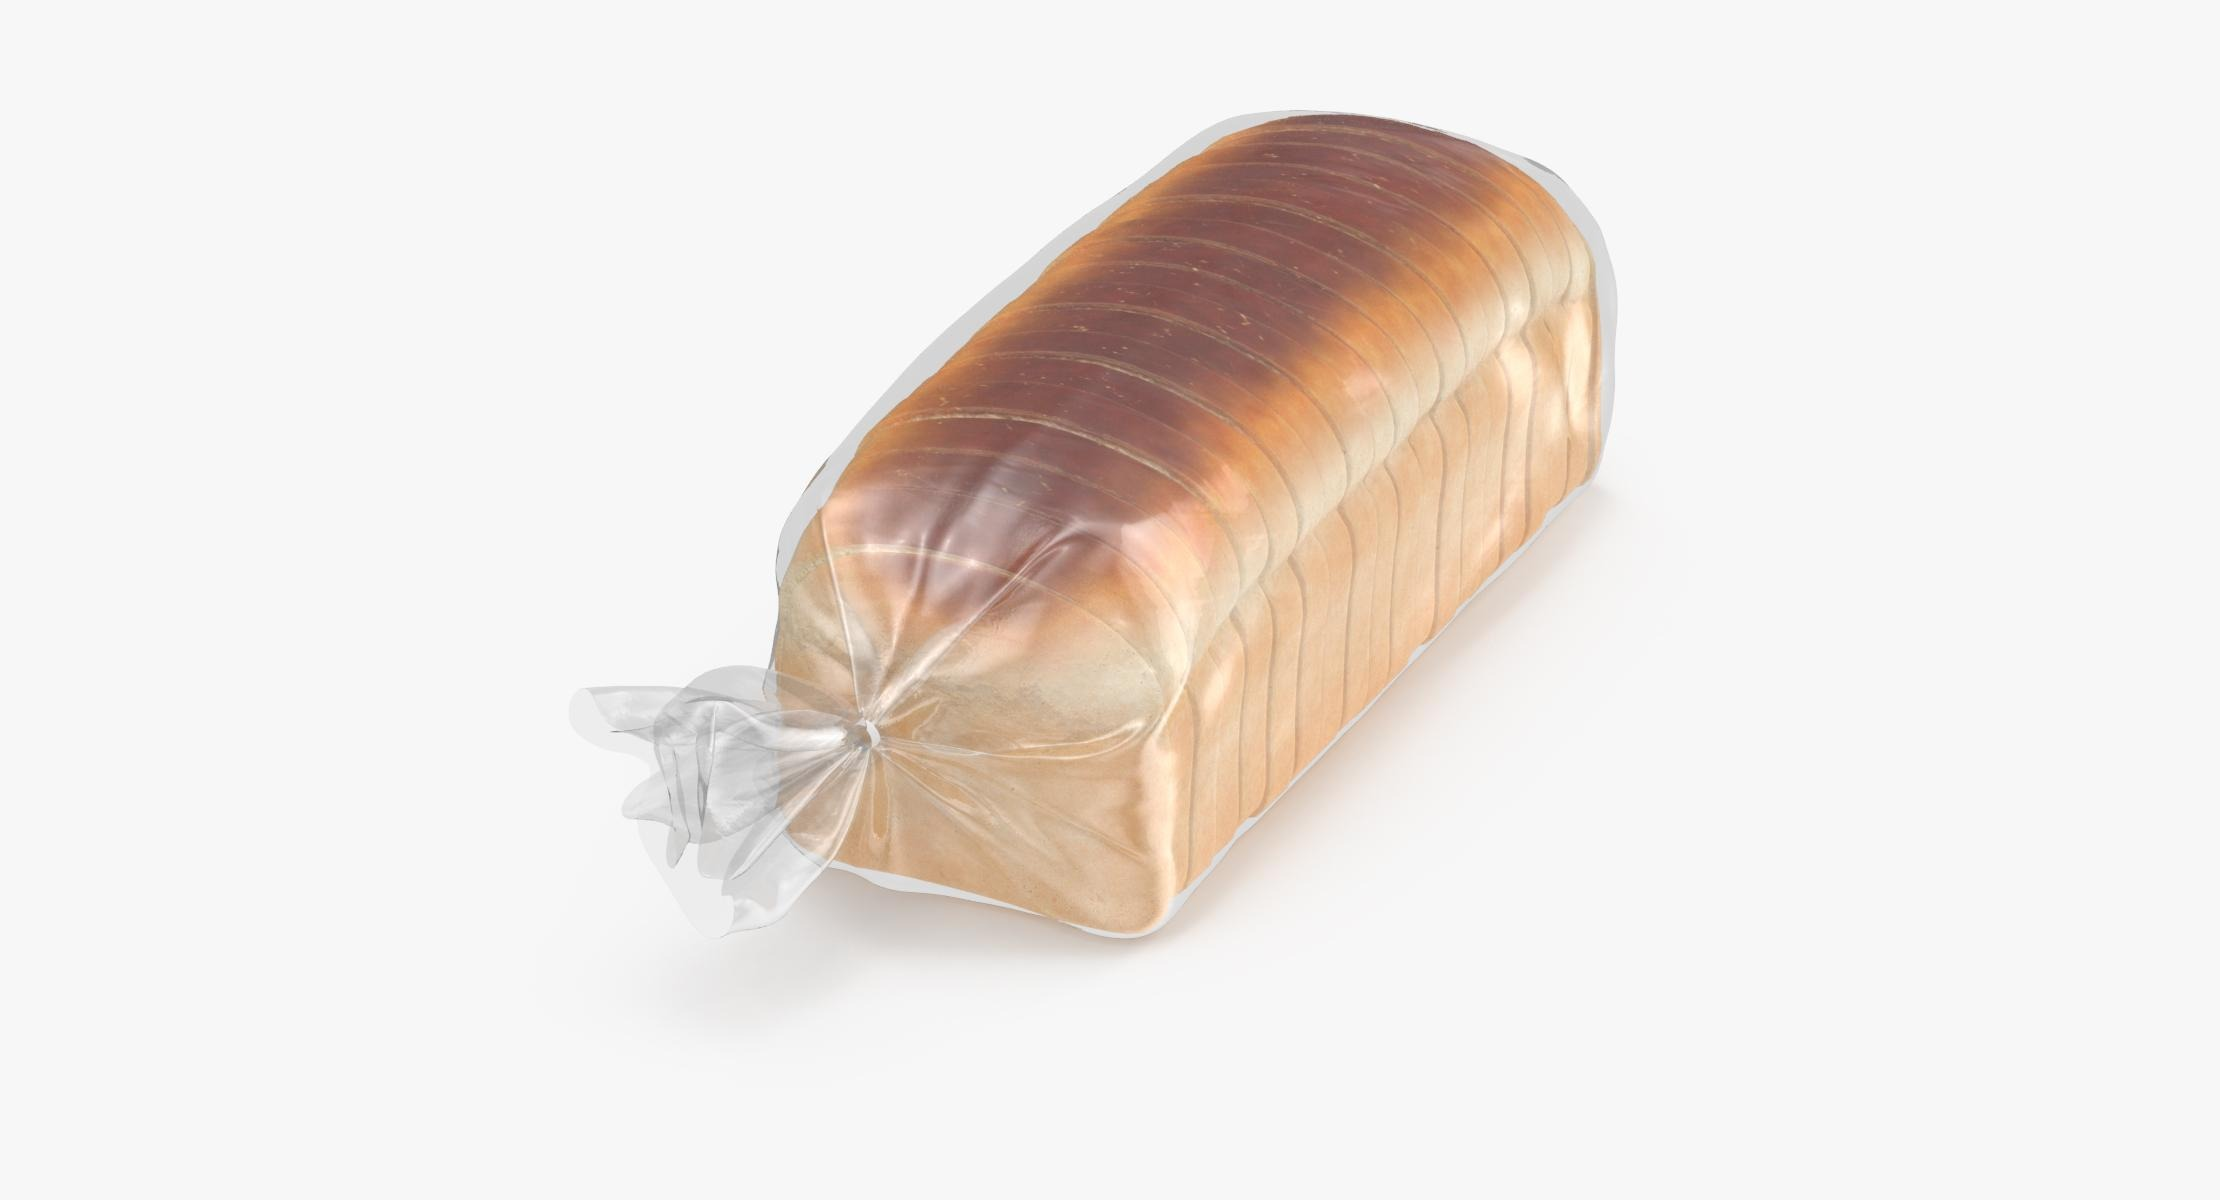 Sliced Bread In Bag - reel 1